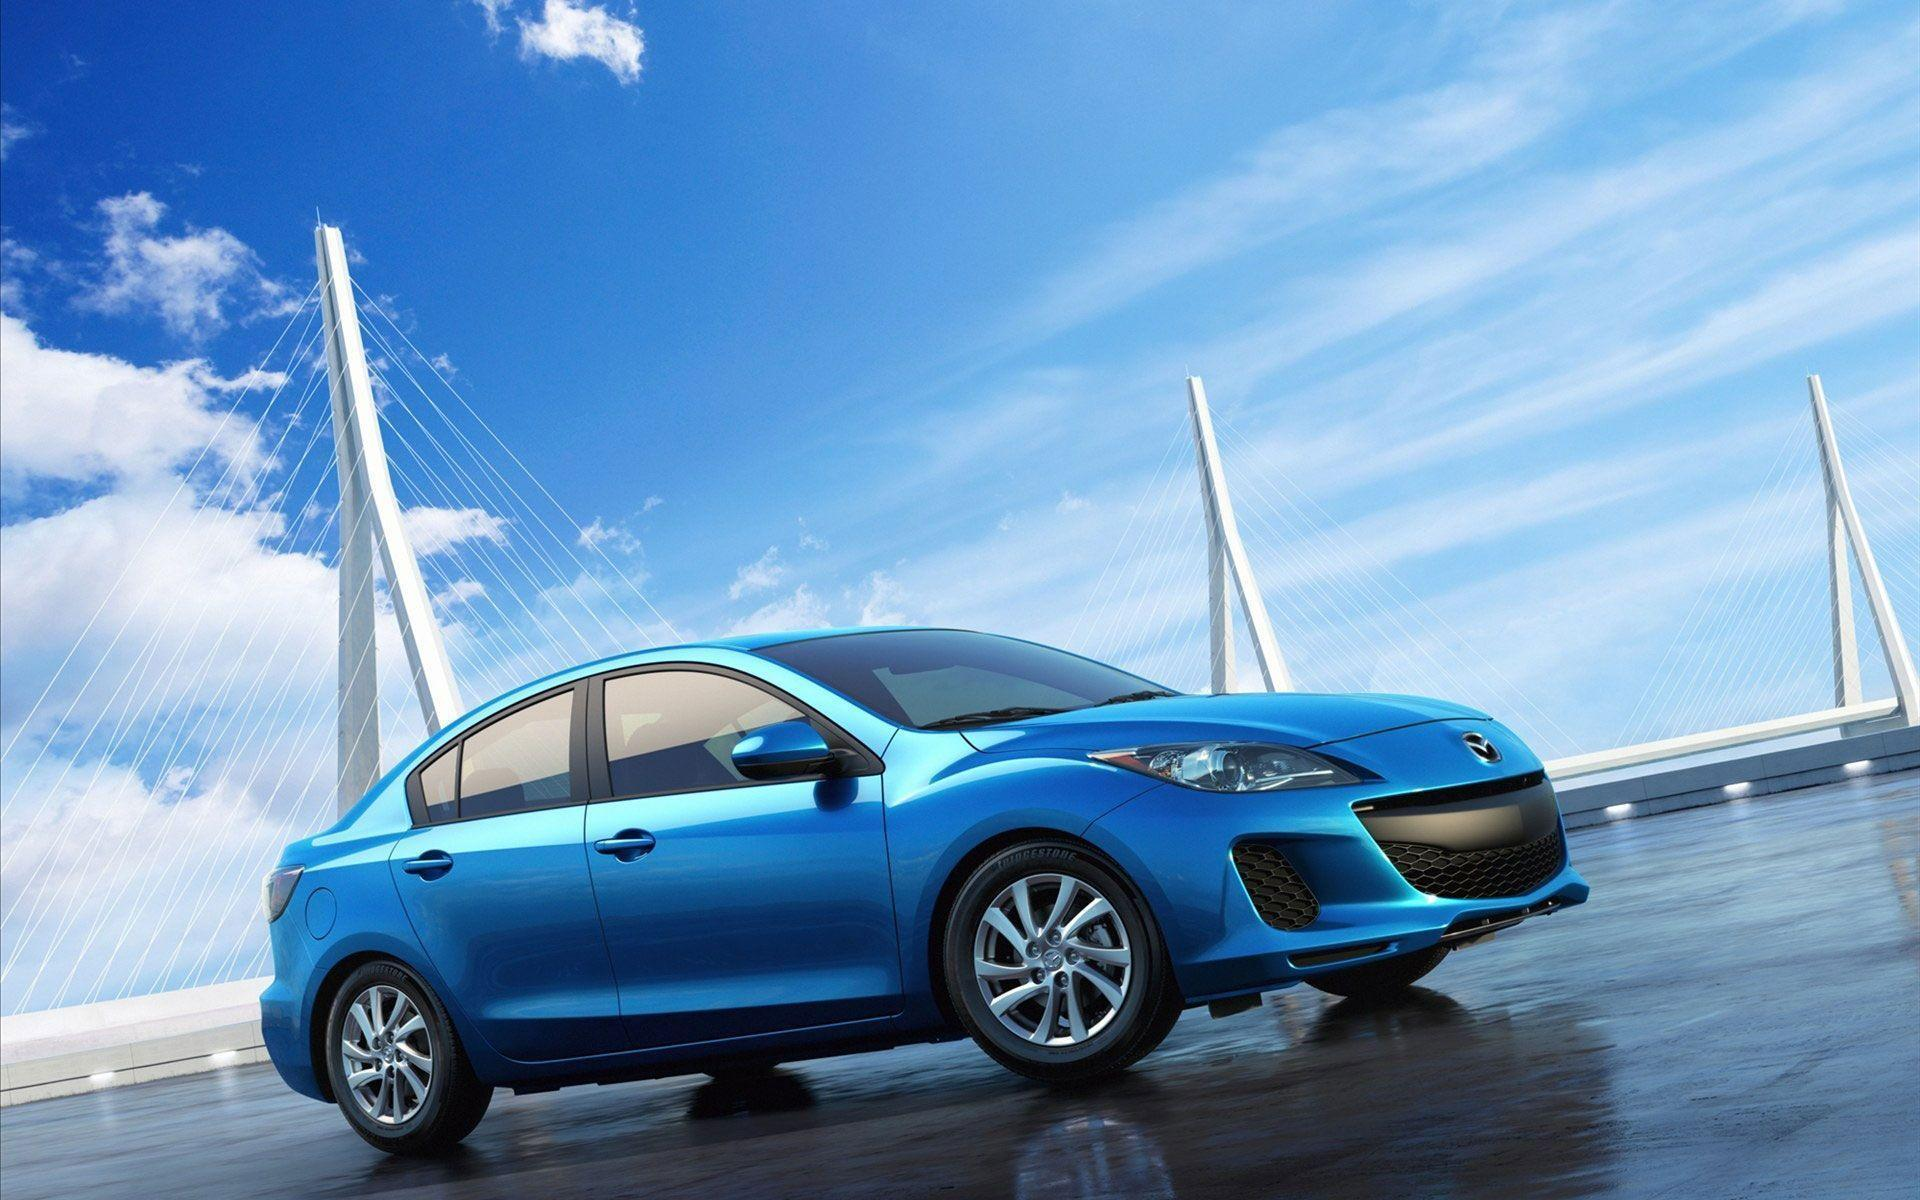 Blue Cars Mazda Vehicles 4x4 Mazda Cx5 1920x1200 Wallpapers